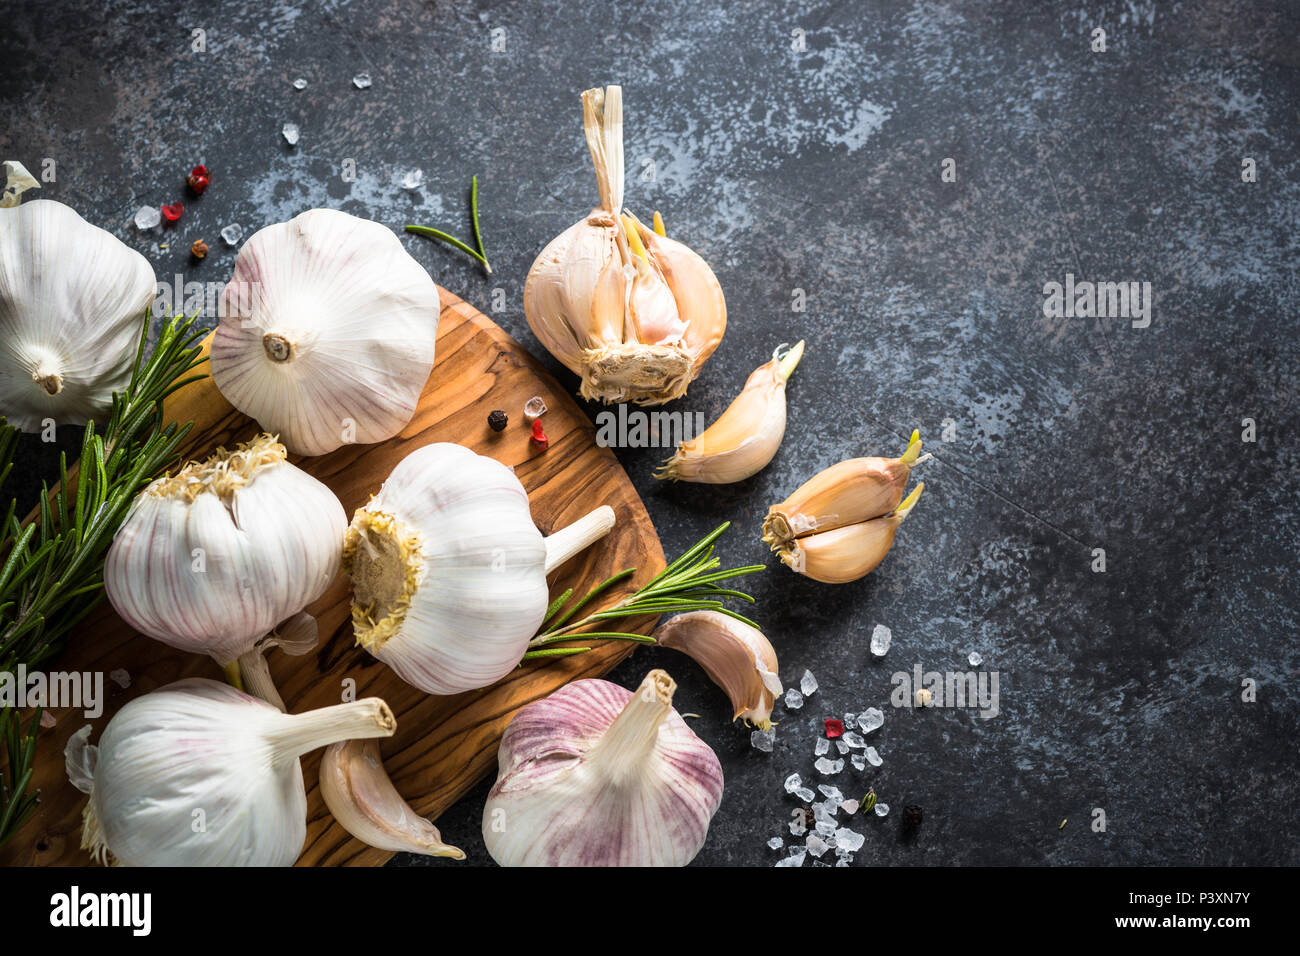 Garlic cloves with spices and herbs on a dark stone background. Top view, Copy space. - Stock Image